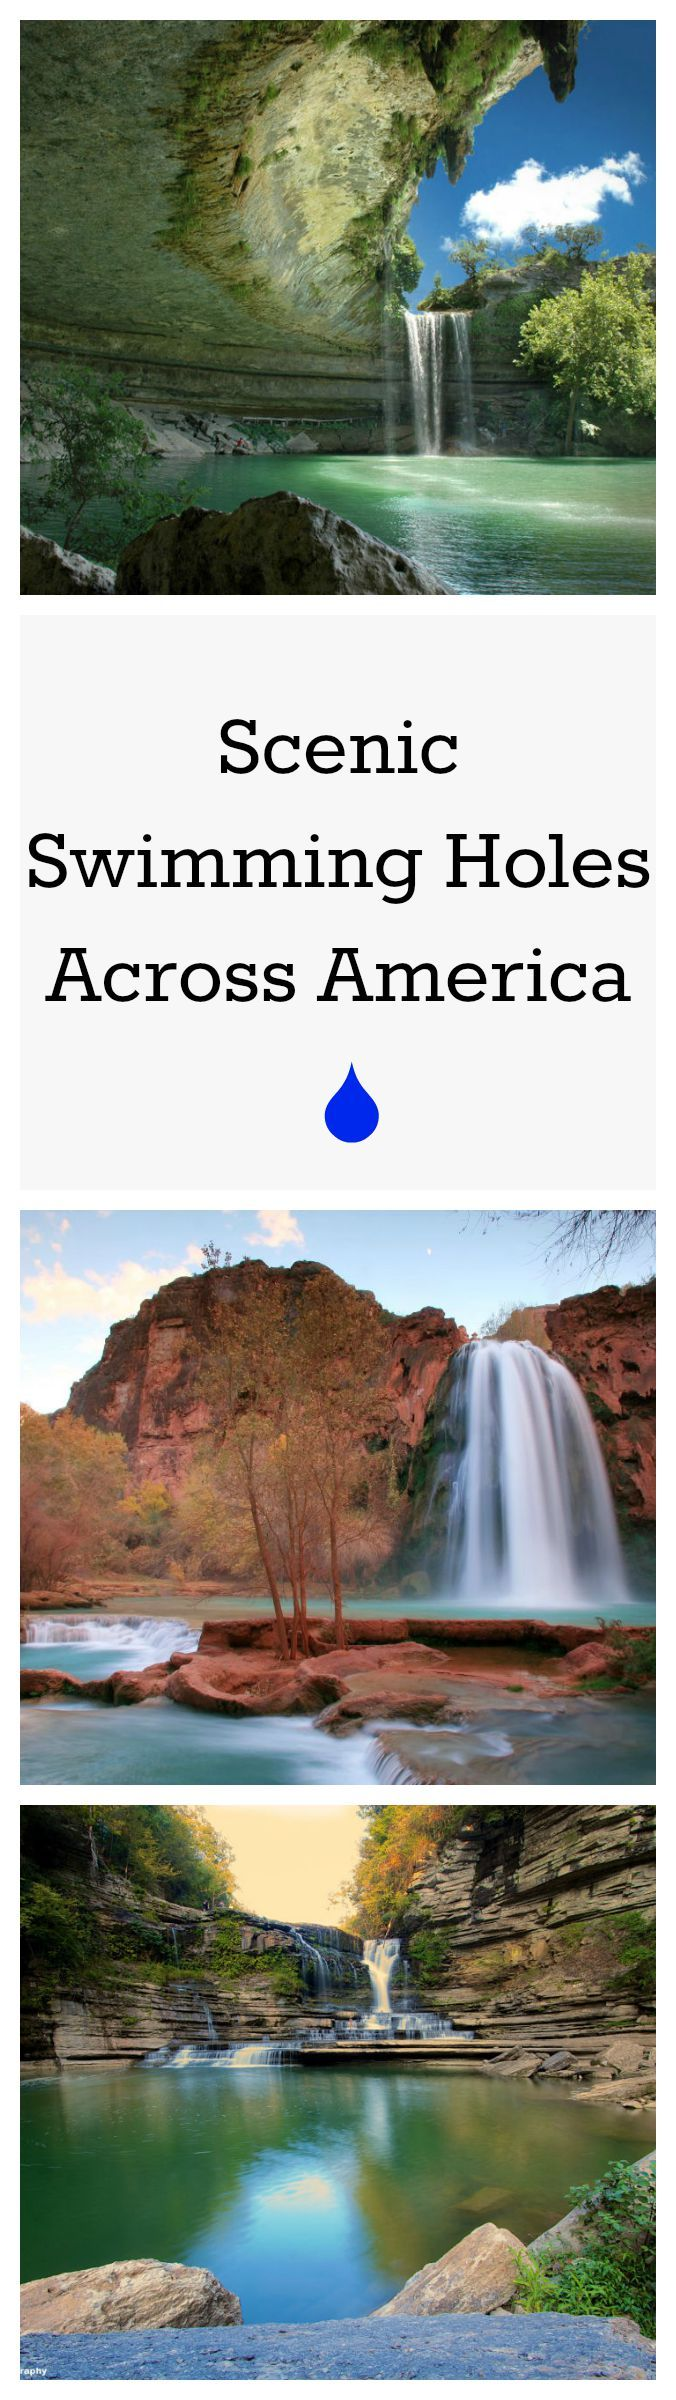 Long summer days call for a cooling dip in these natural swimming holes across America.